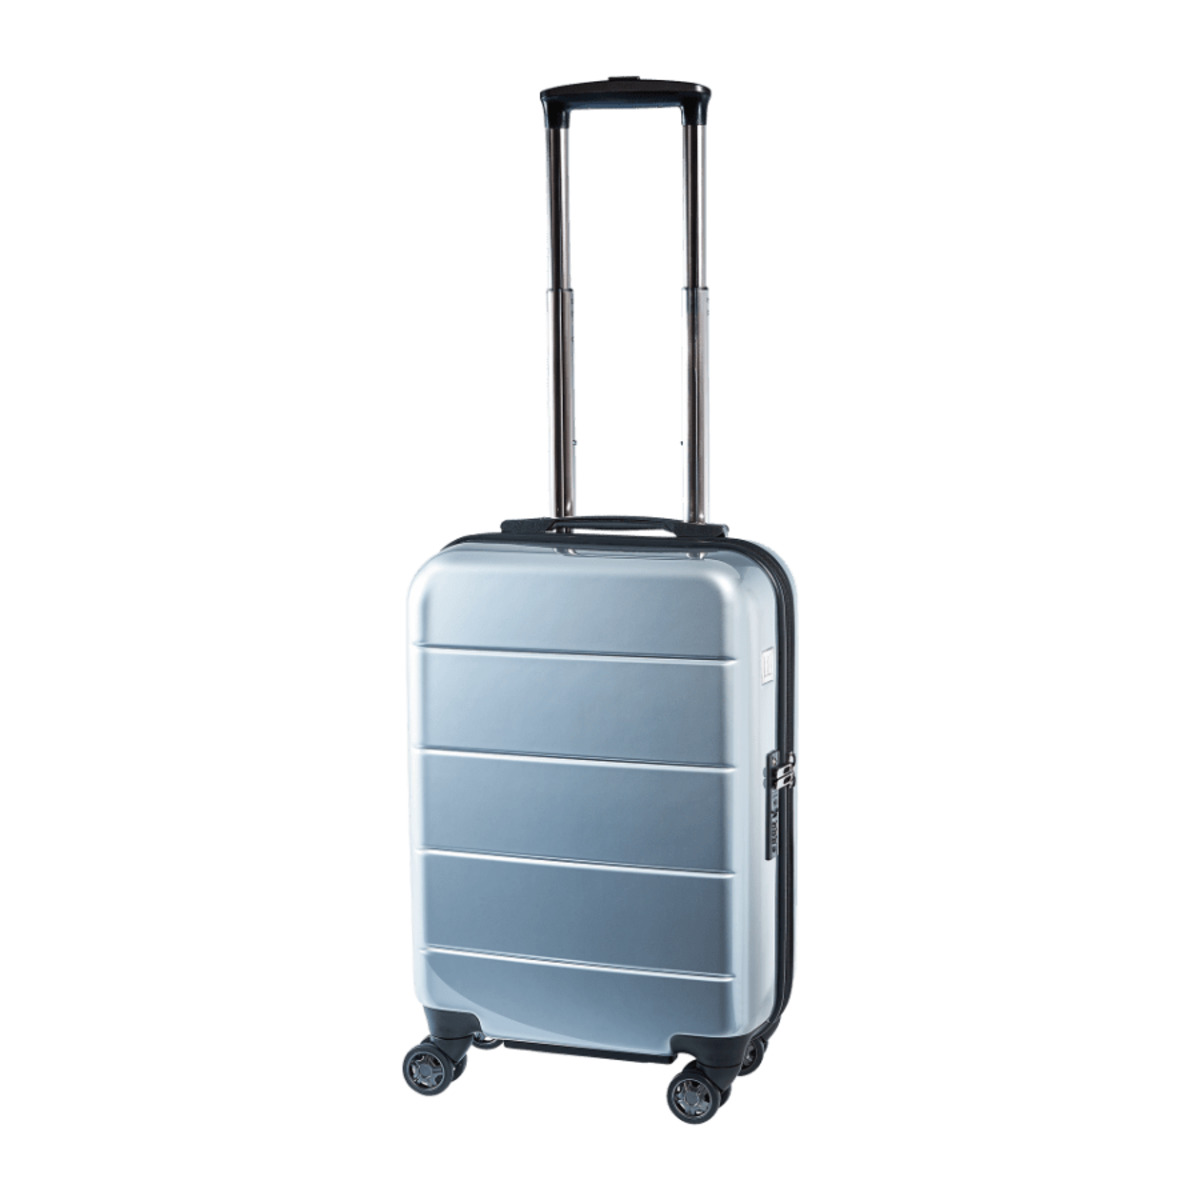 Bild 2 von ROYAL LIFE  	   Trolley Boardcase in Metallic-Optik